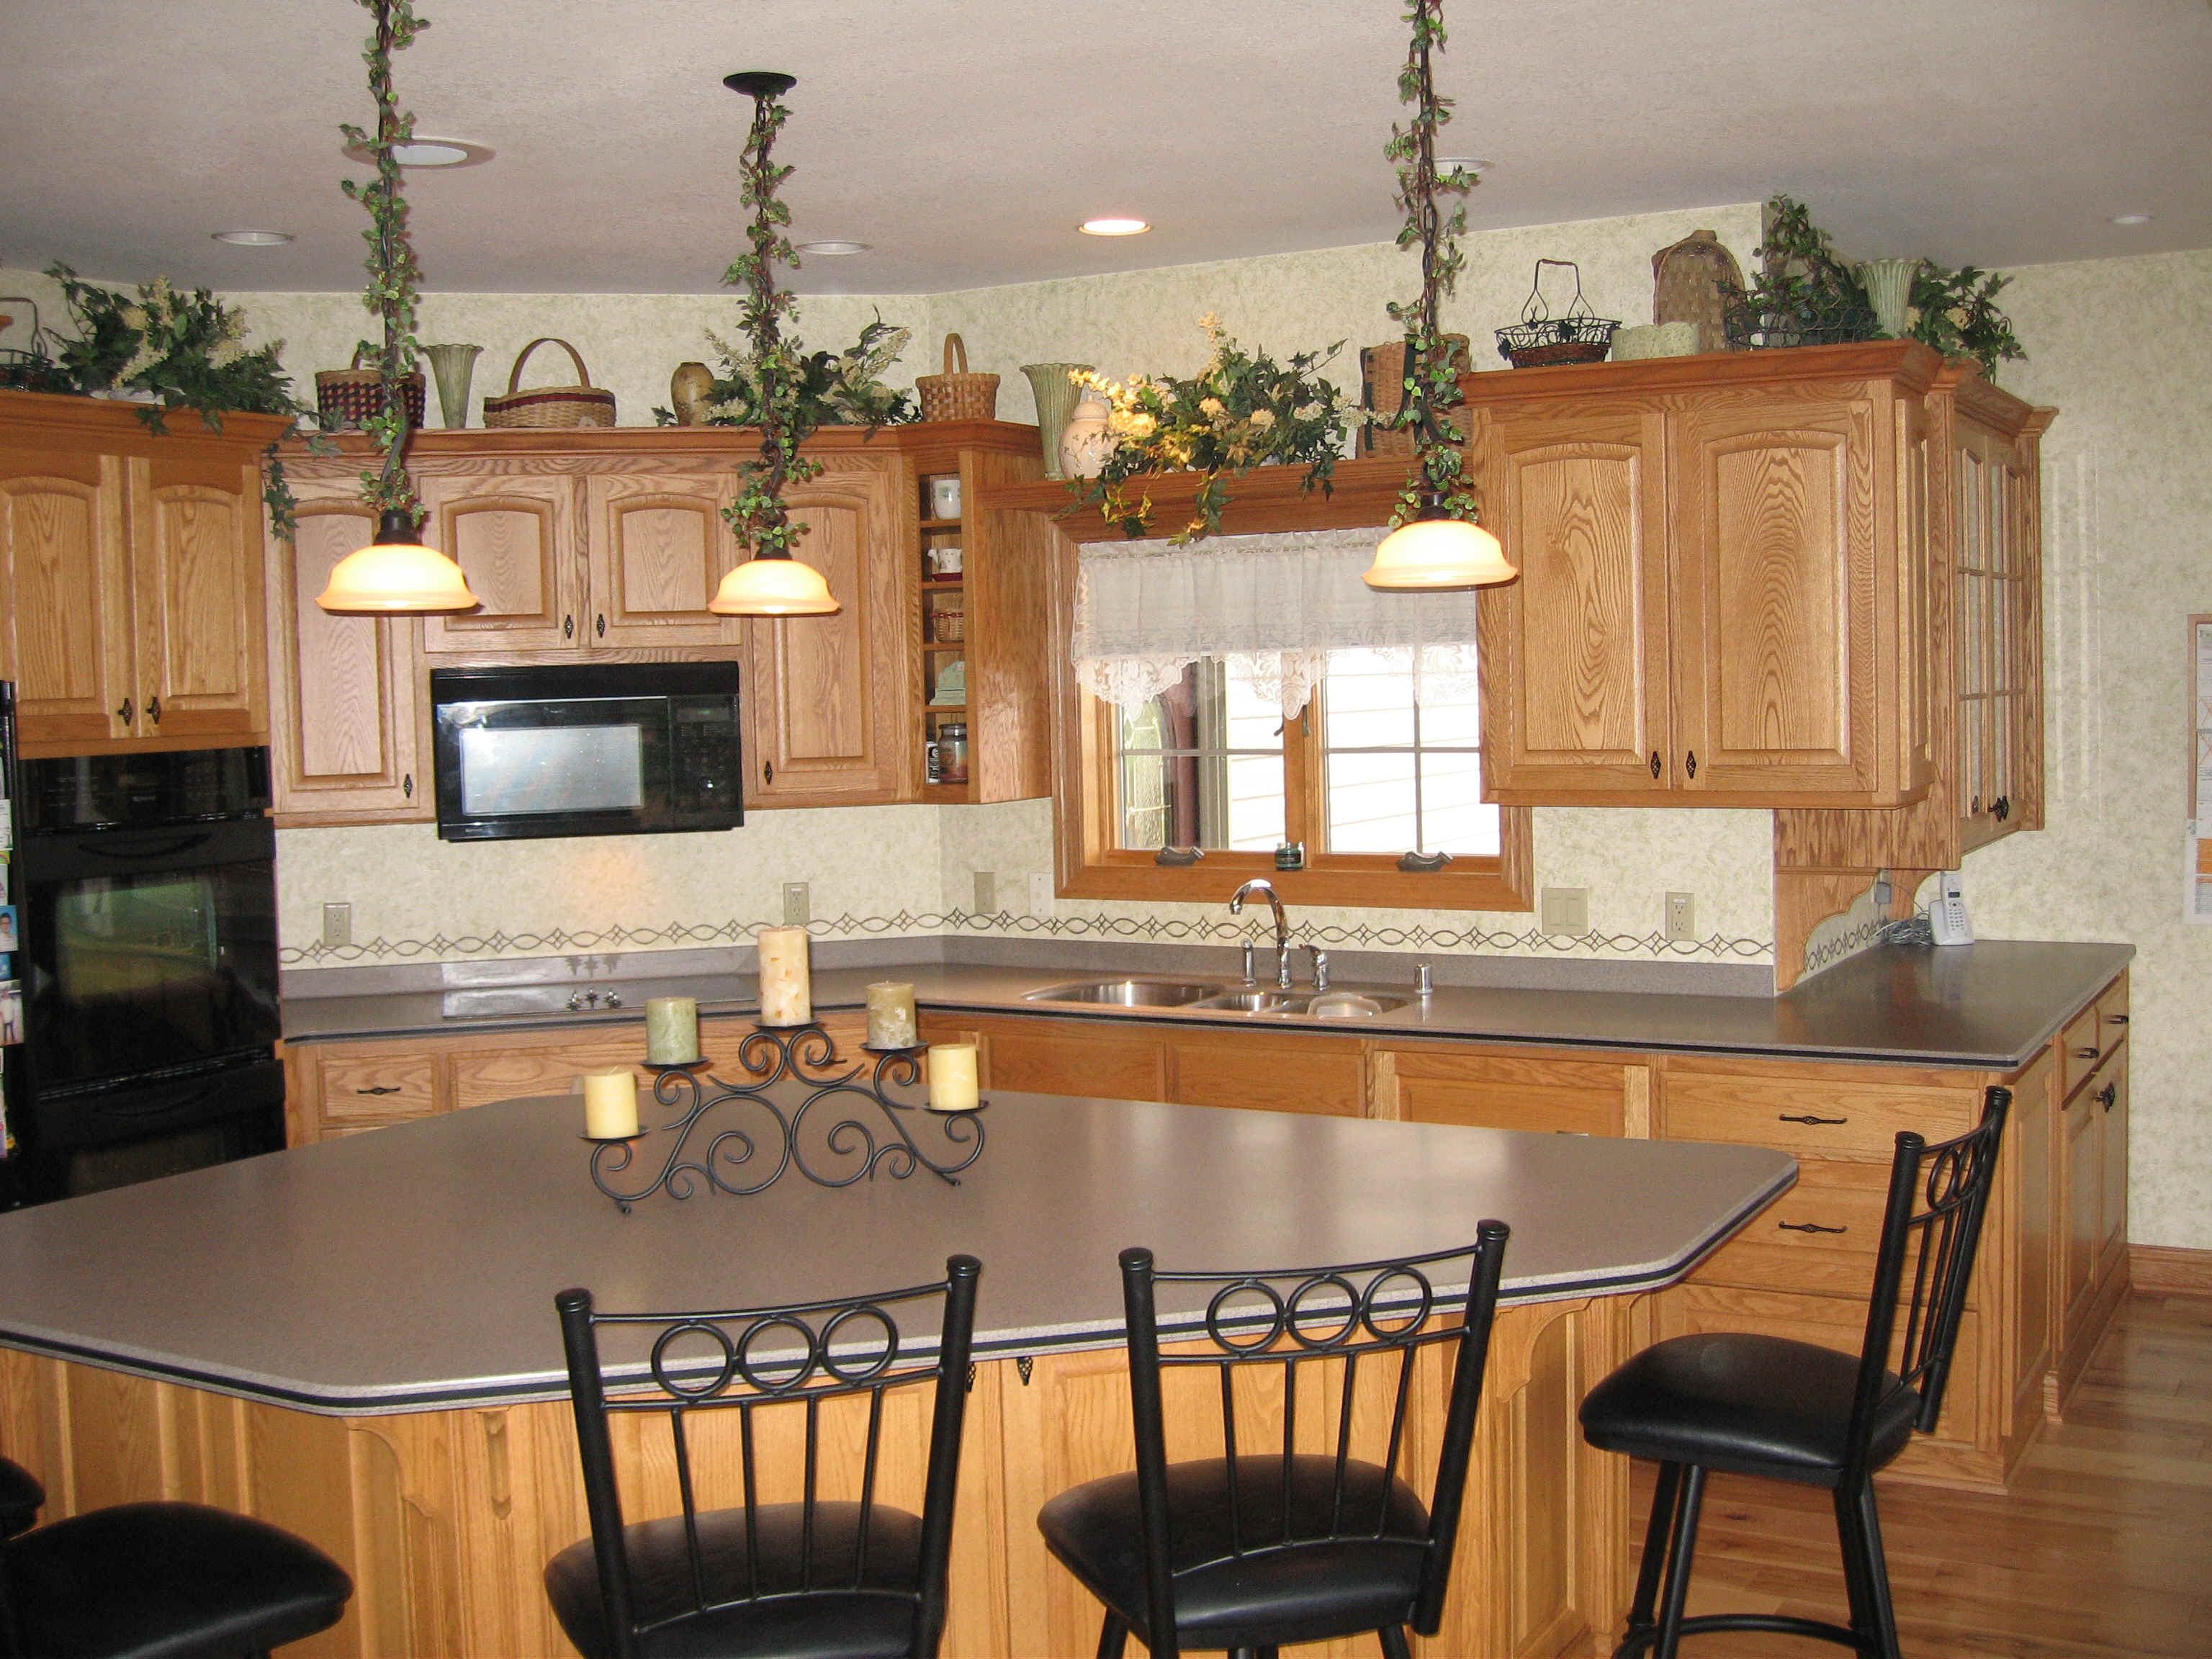 Kitchen island table with stools photo - 3